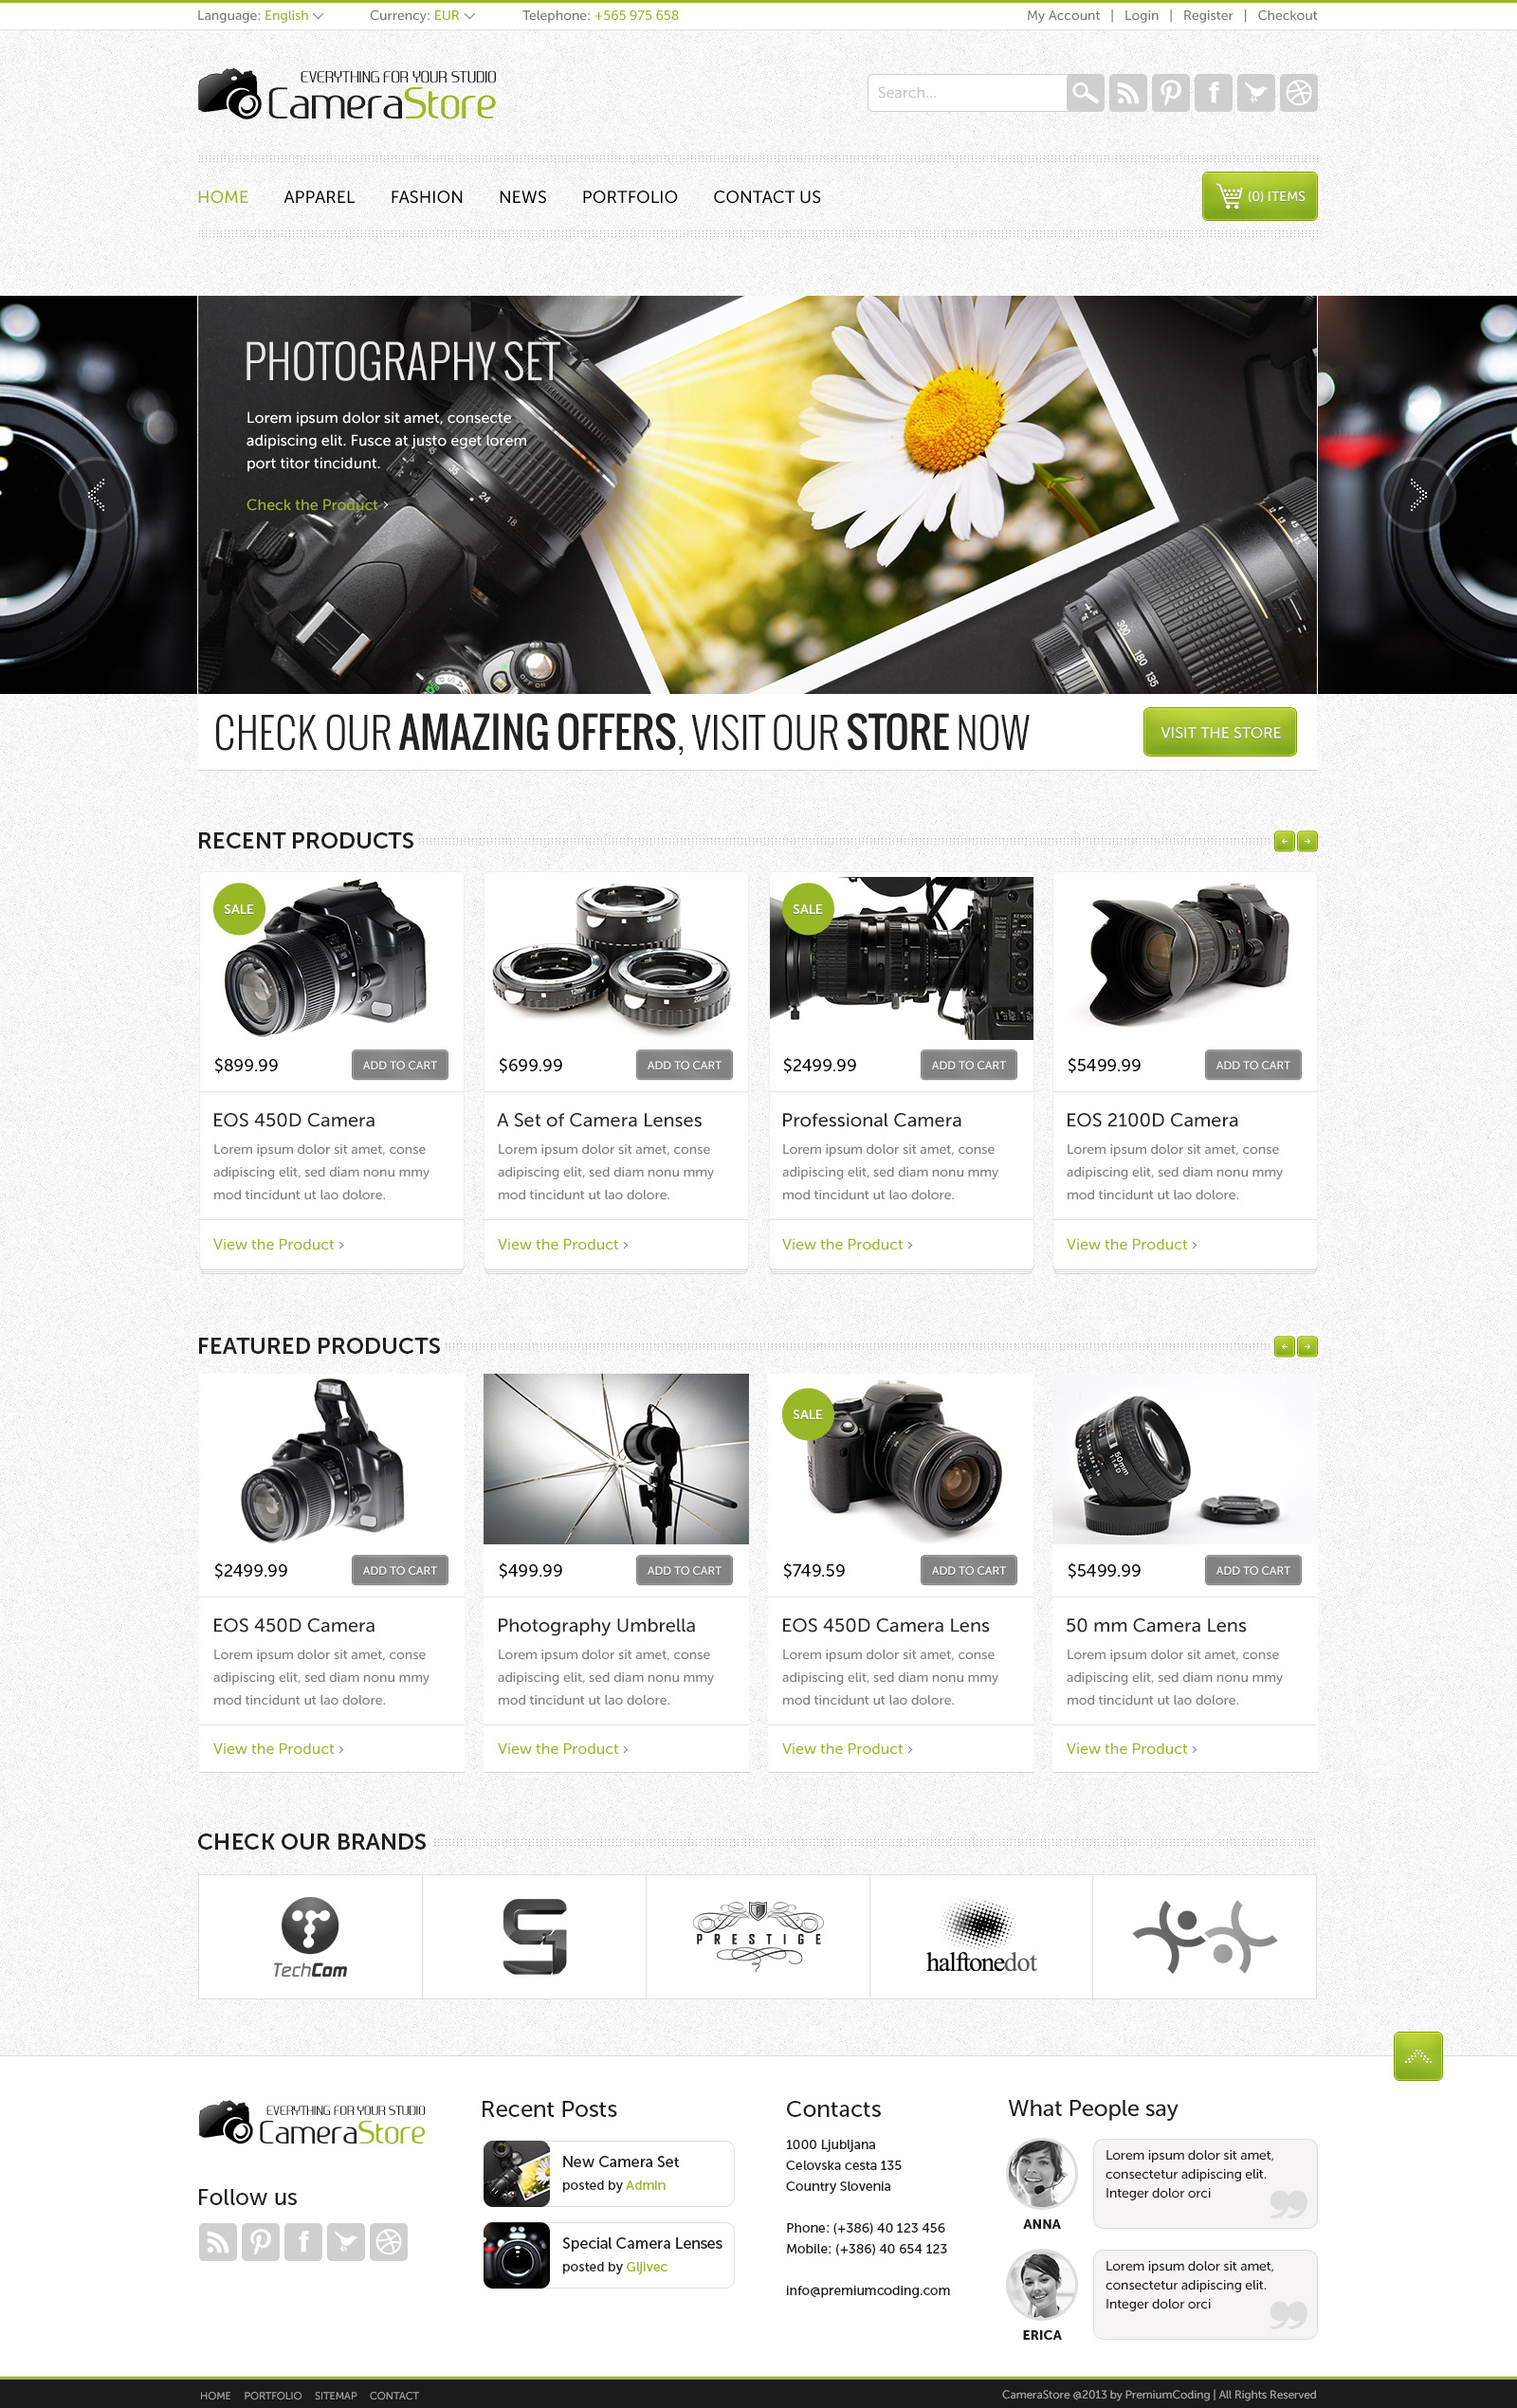 Camera Store Ecommerce Template PSD